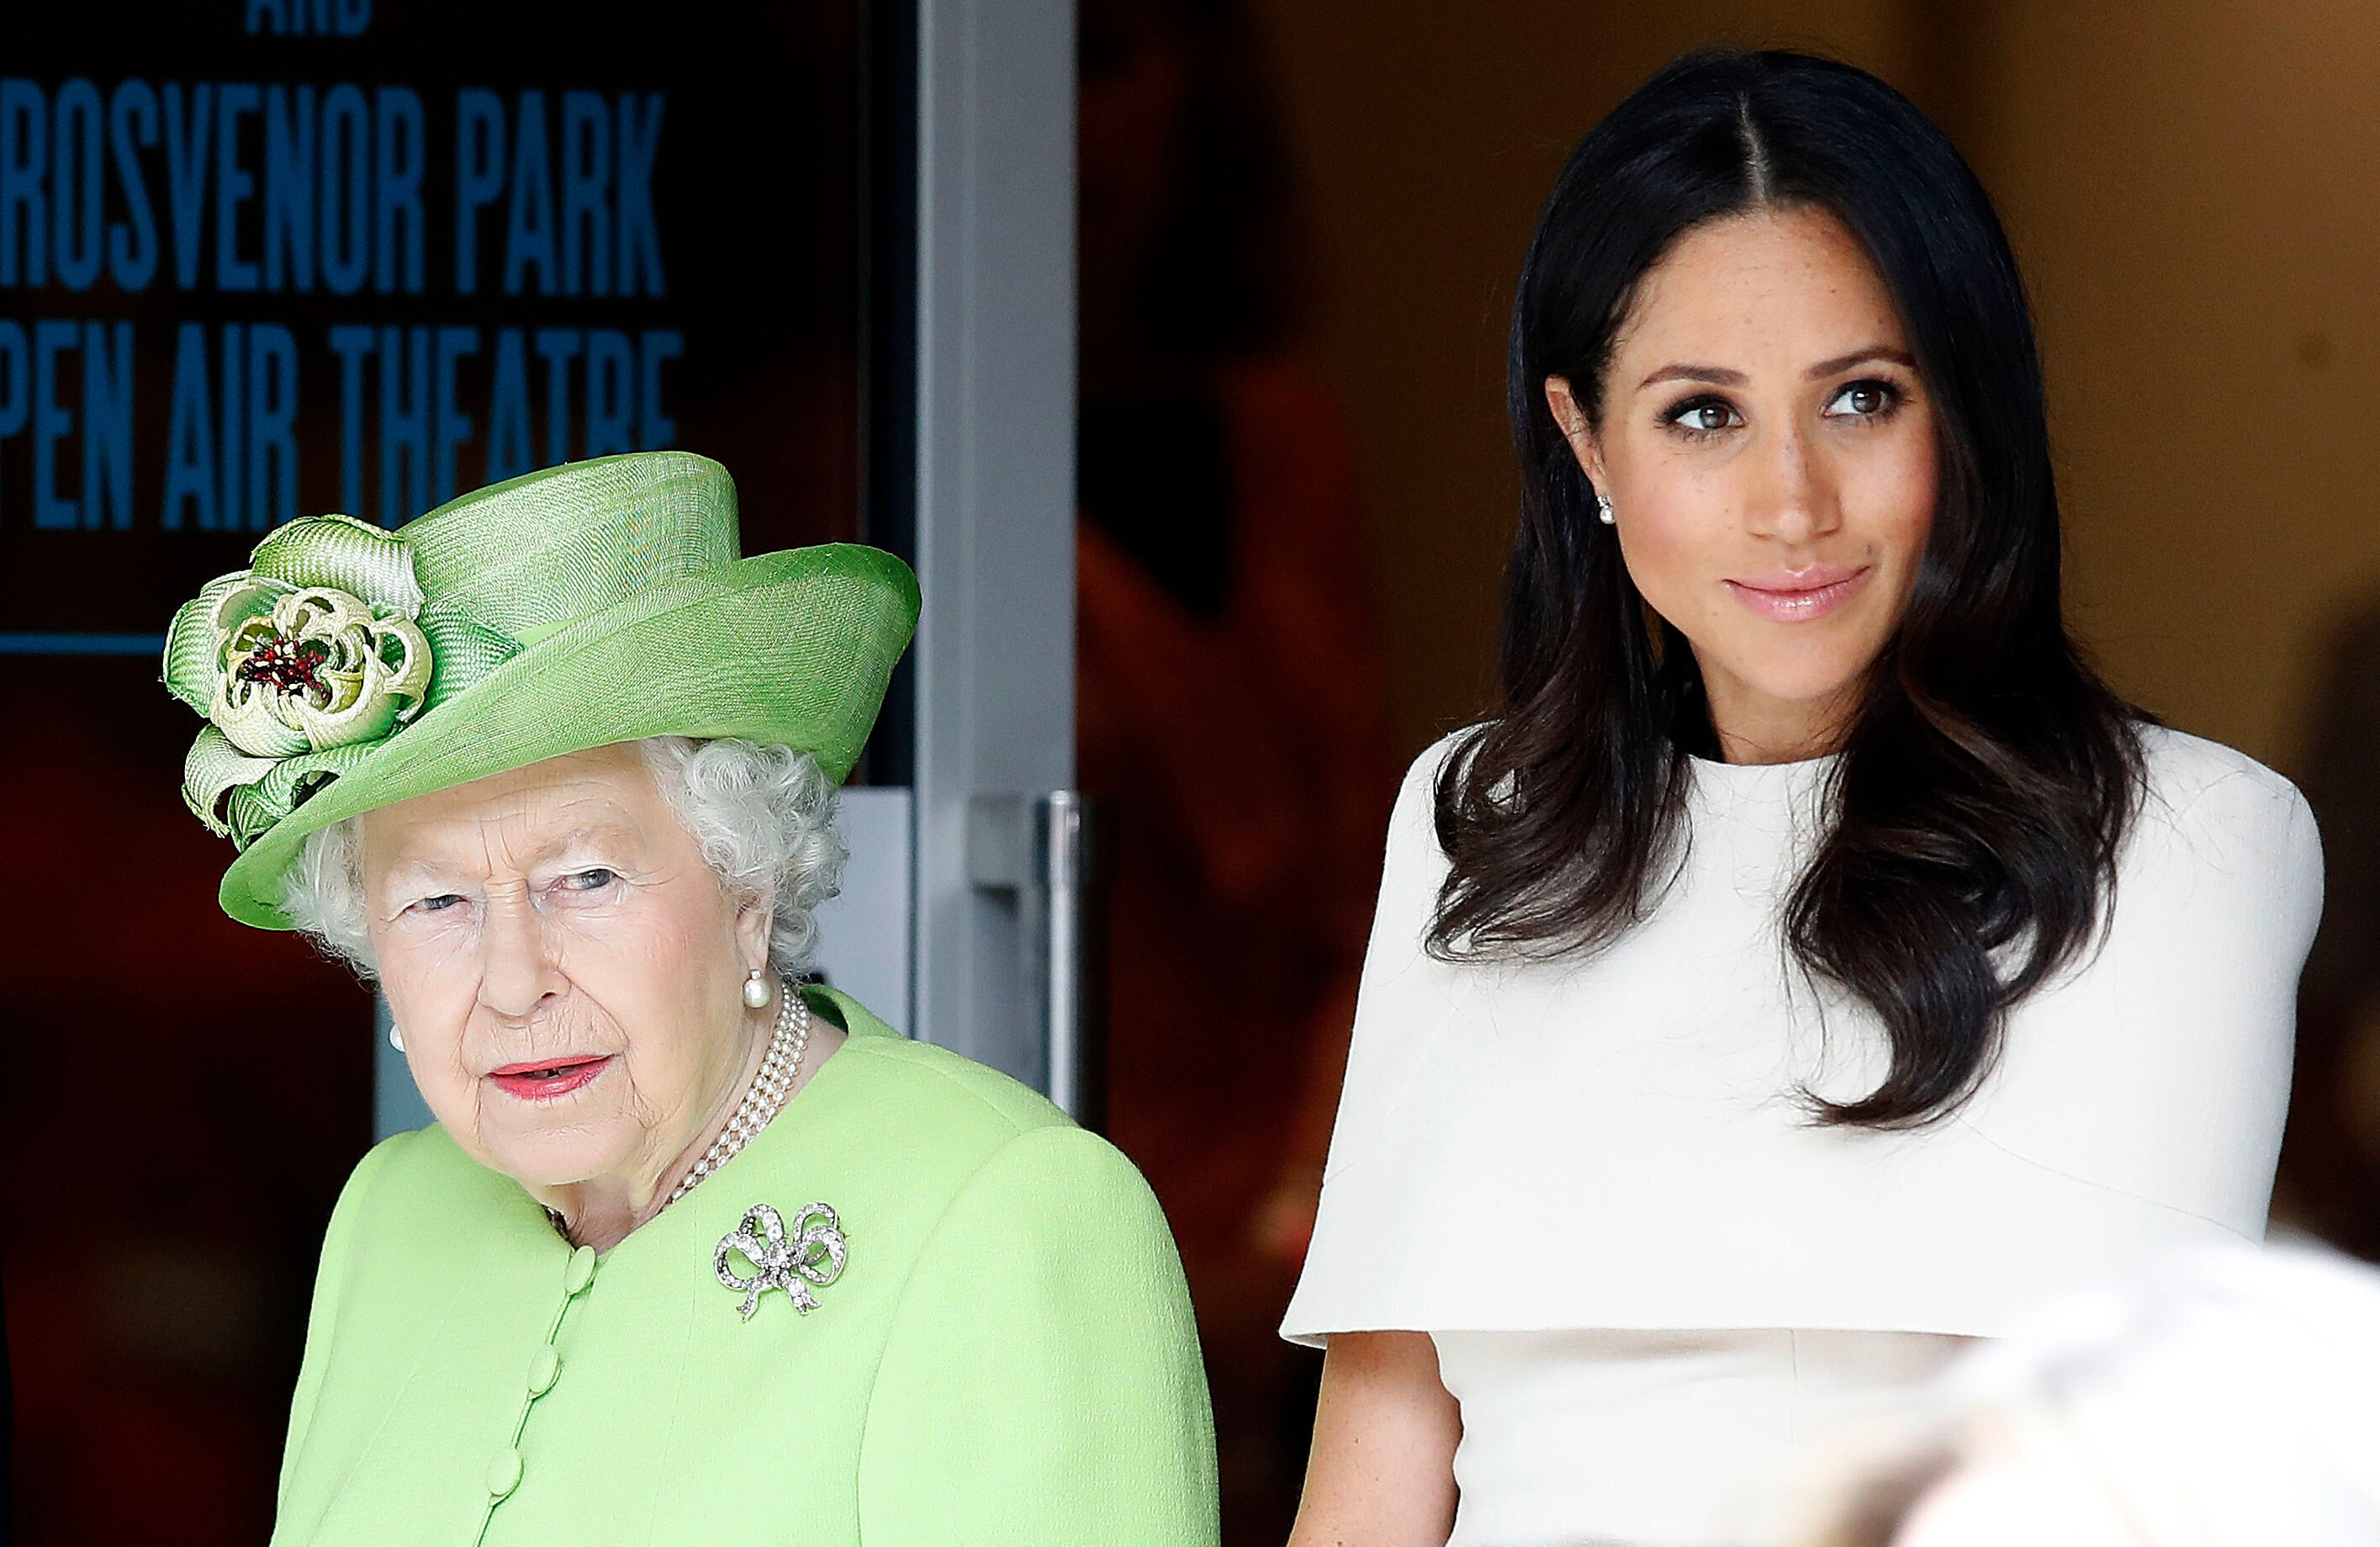 The Duchess of Sussex with the Queen in Cheshire last July [Photo: PA]